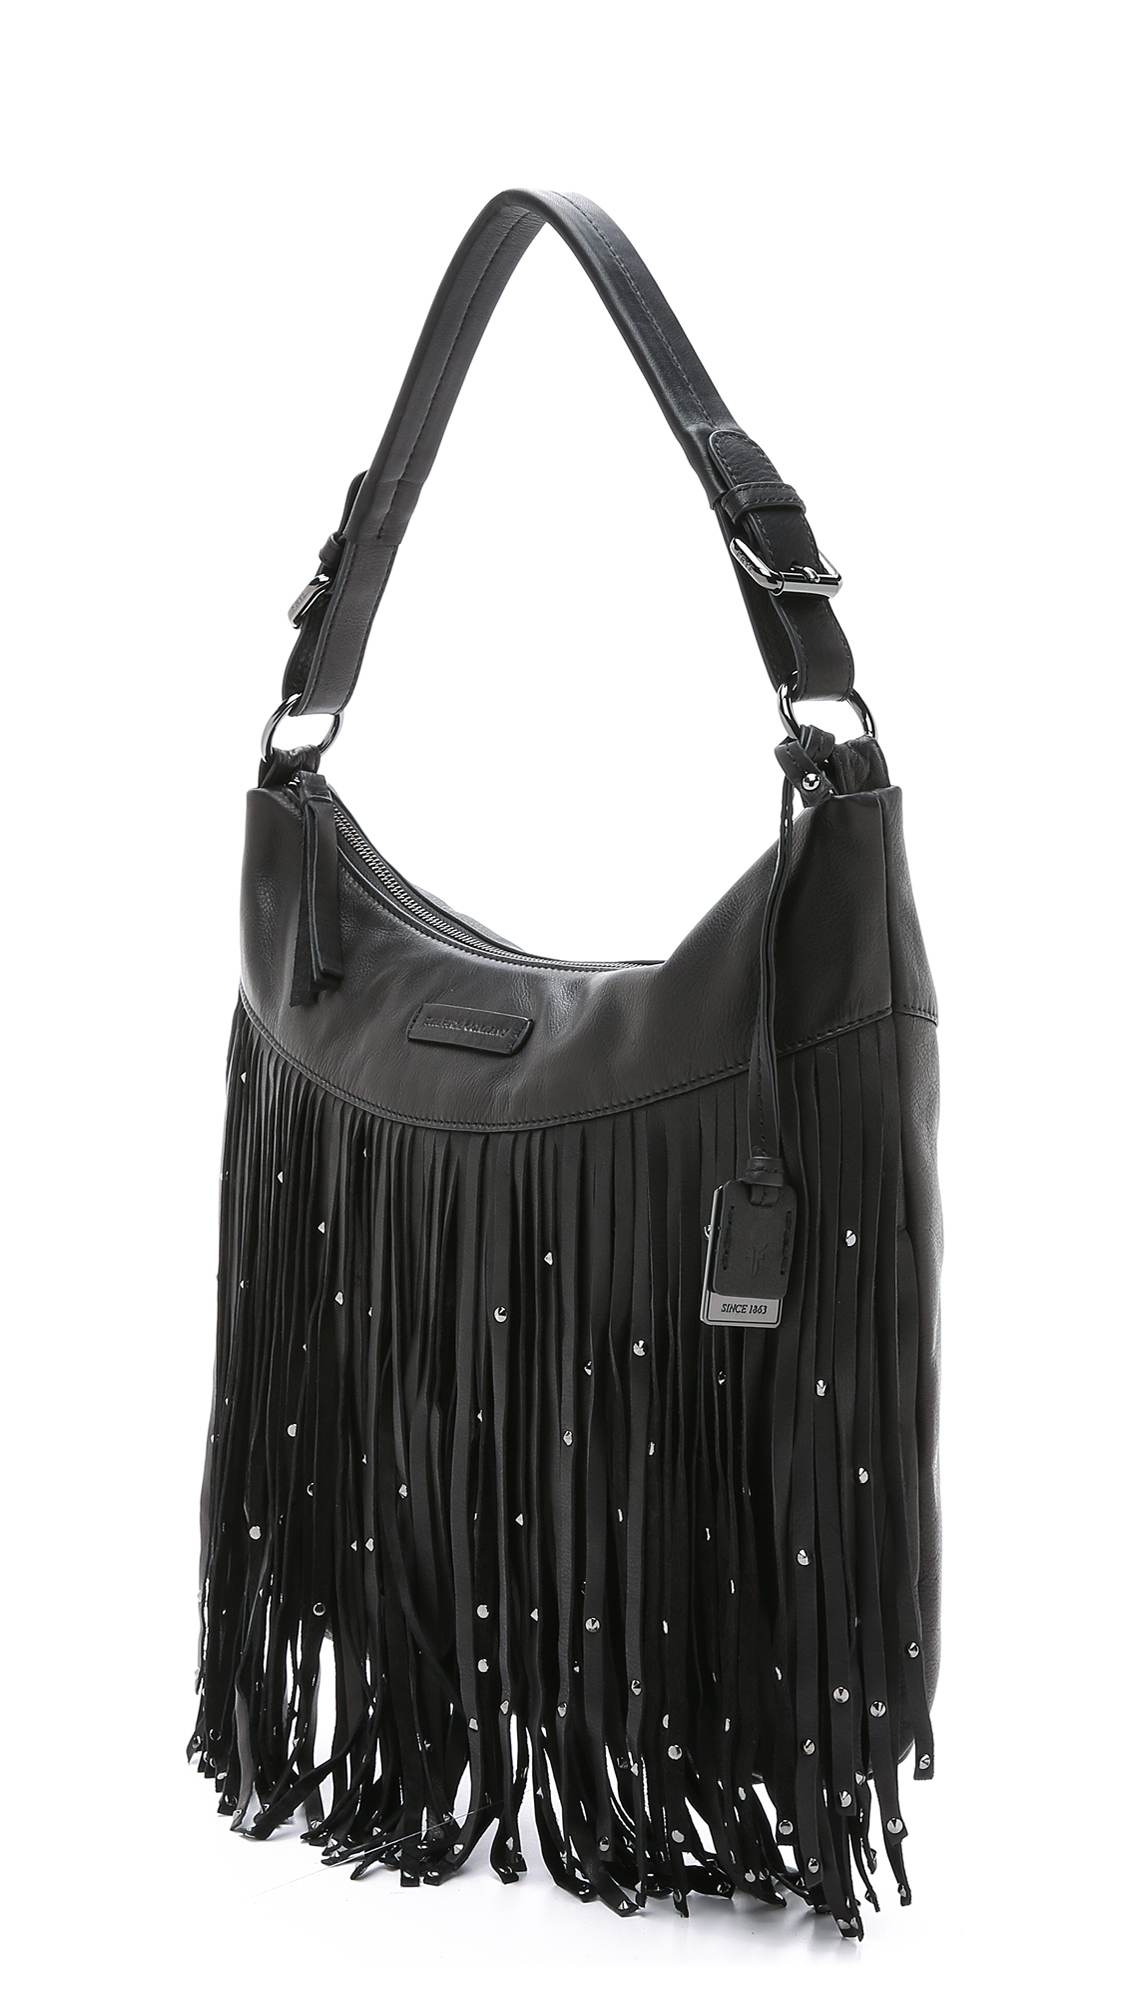 Frye Heidi Stud Fringe Hobo Bag - Black in Black | Lyst